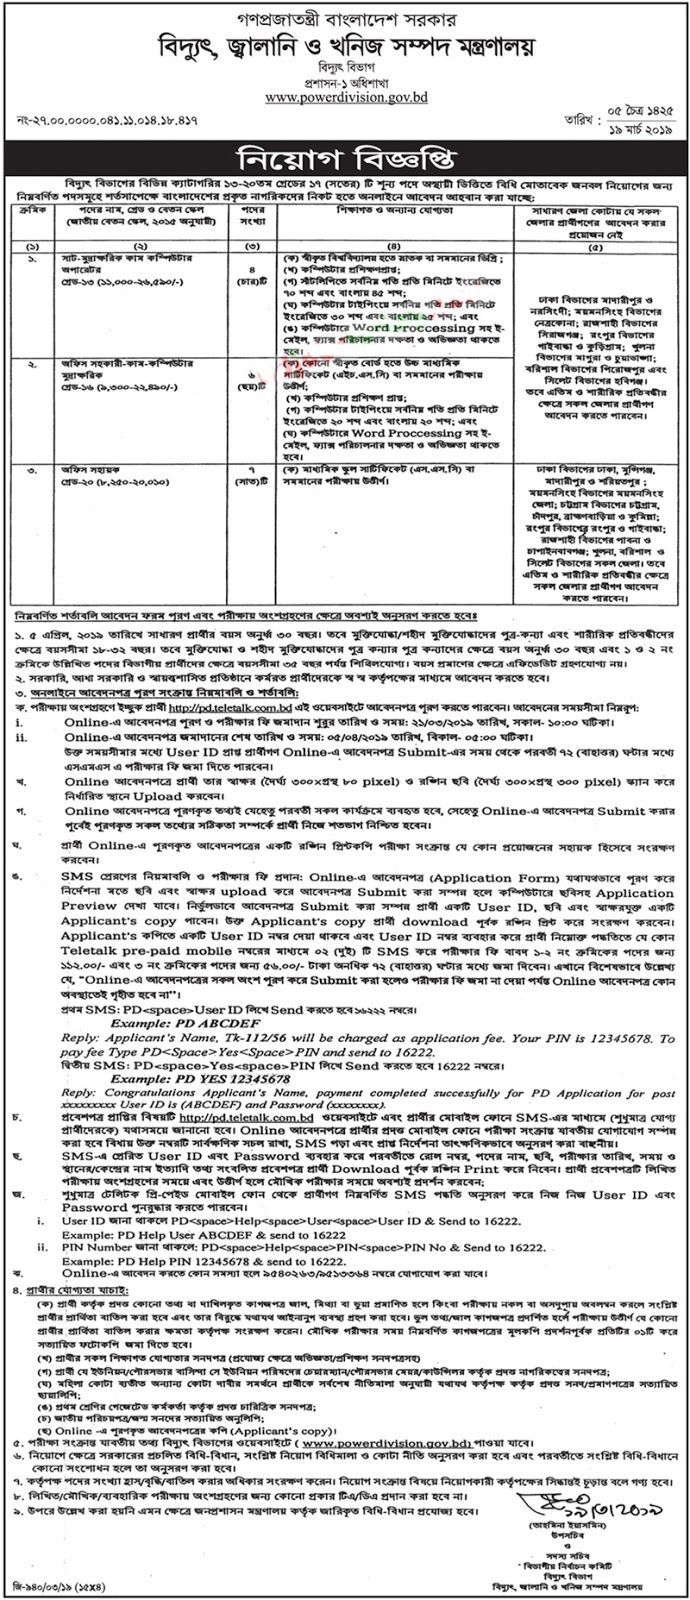 Ministry of Power, Energy and Mineral Resources Job Circular 2019